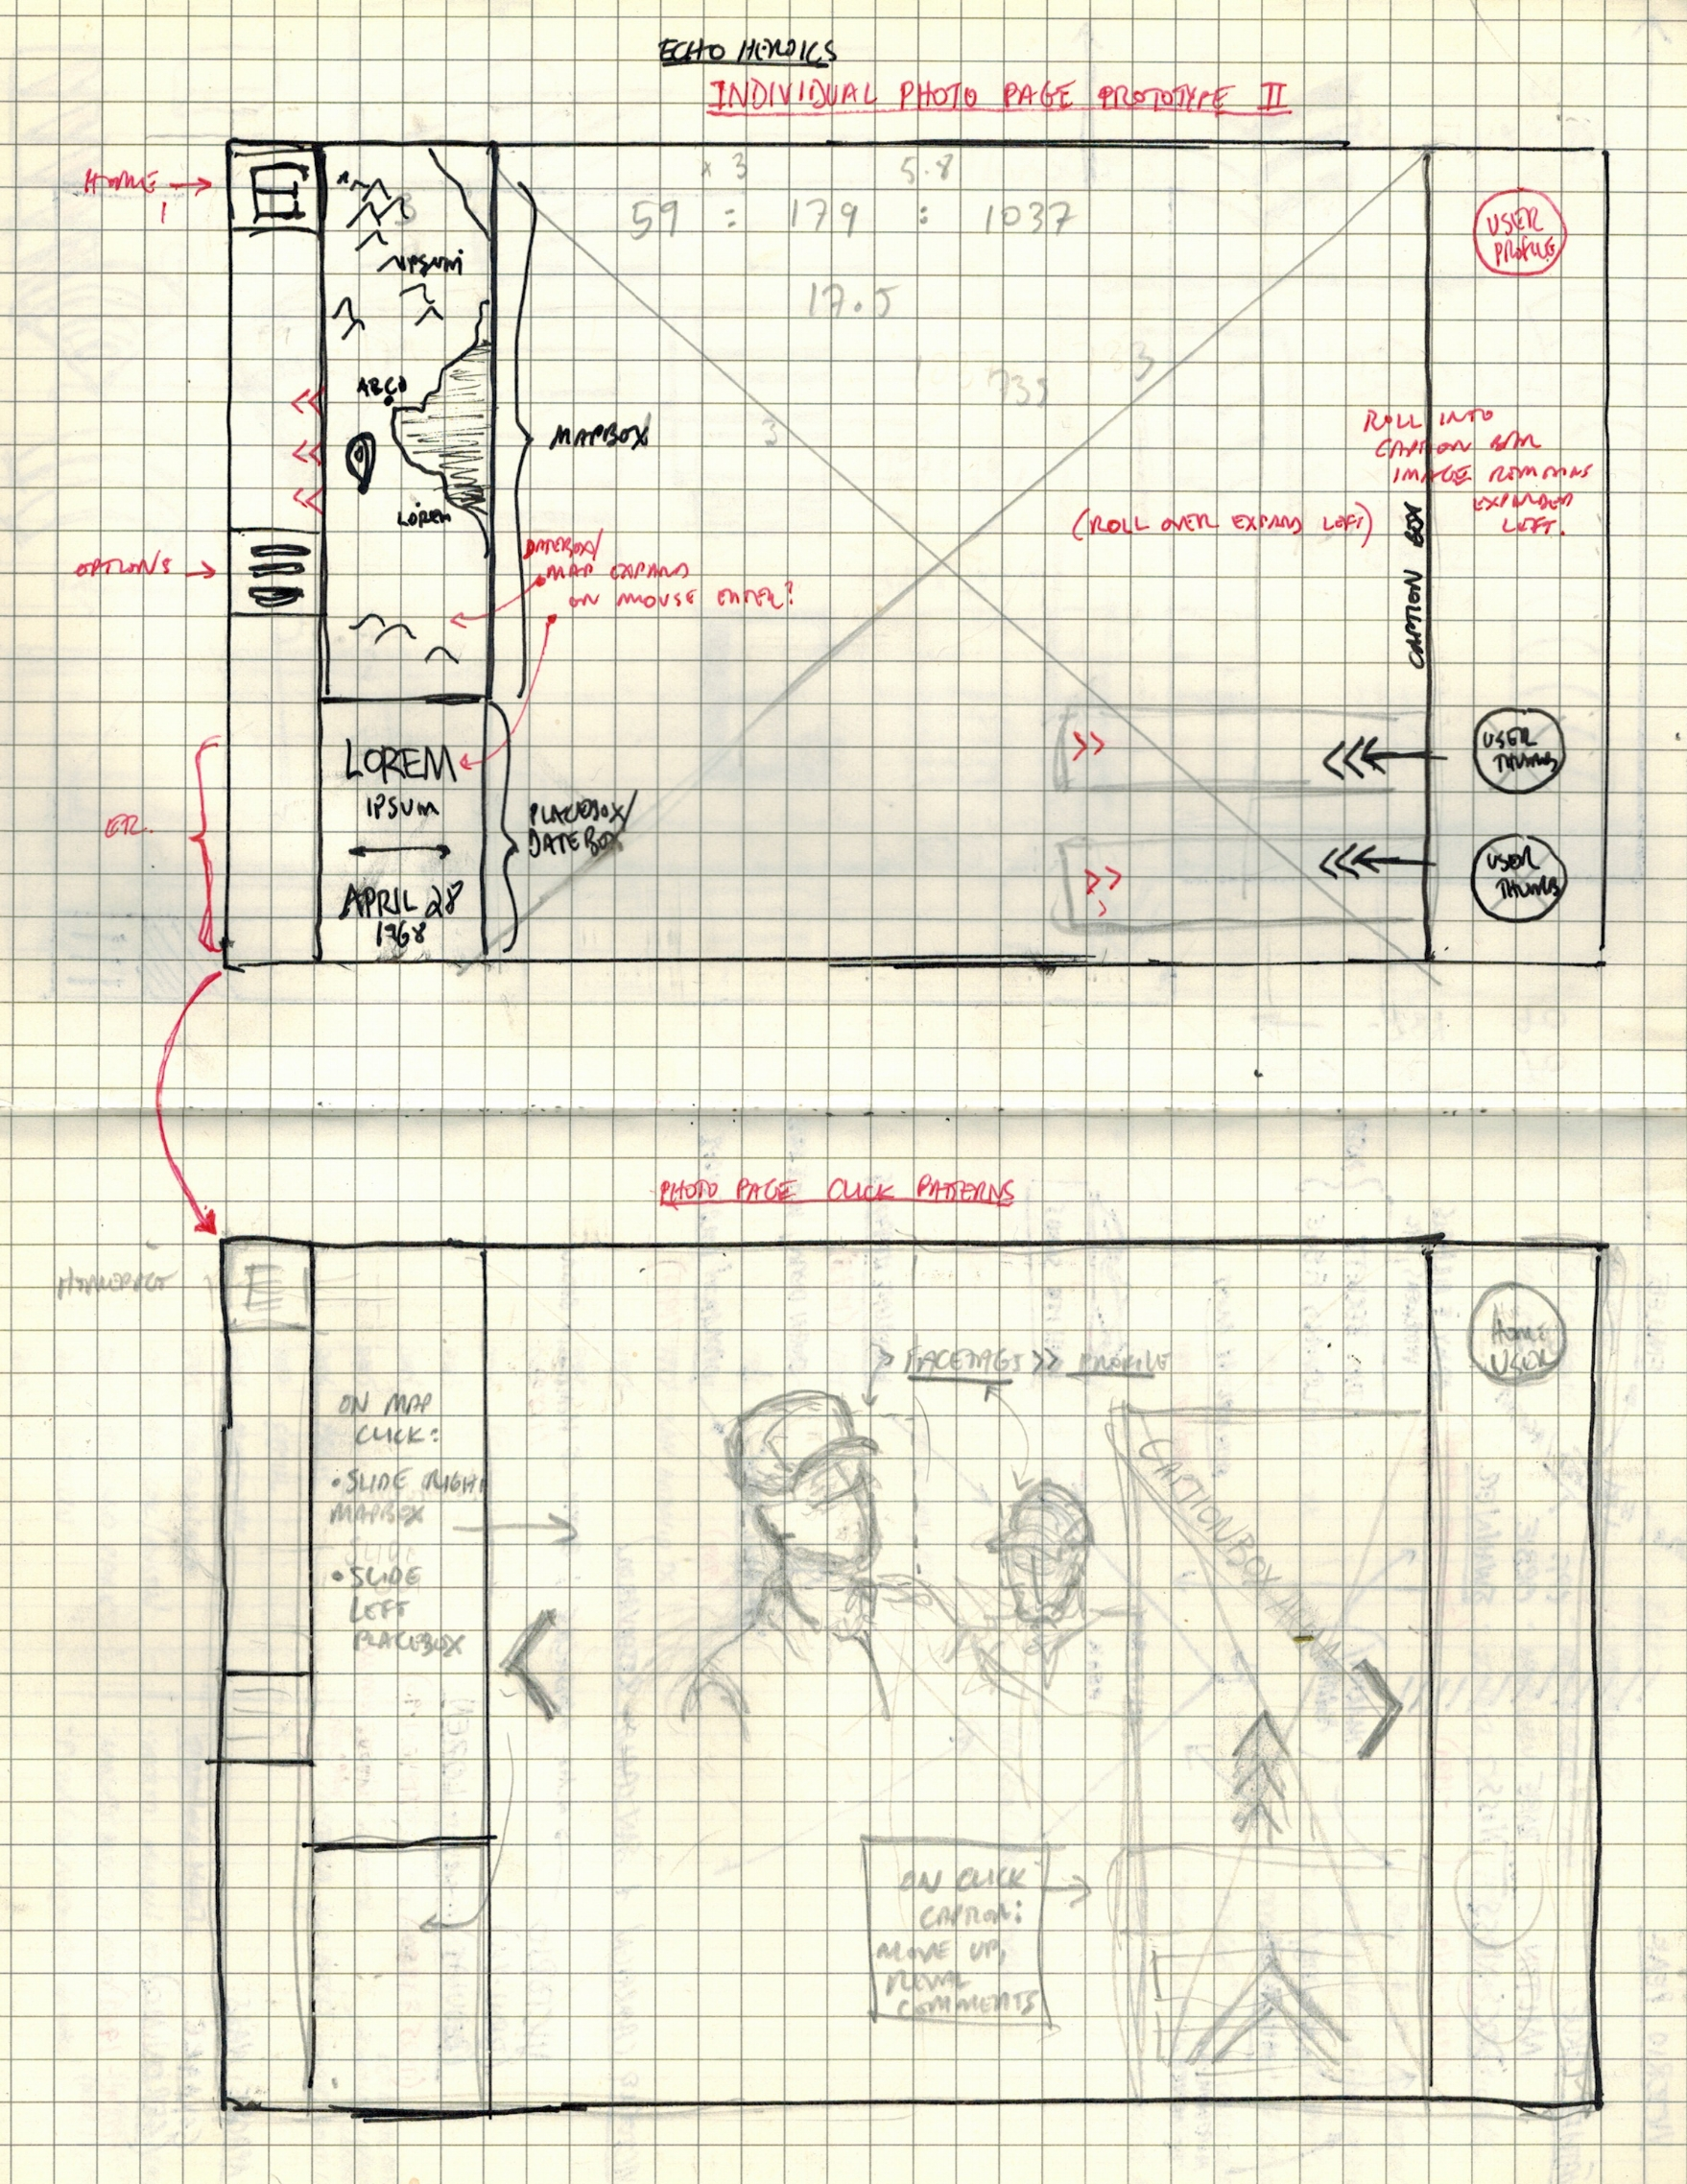 Two of my preliminary notebook sketches mapped out the  interface and click-patterns for each photograph's dedicated page, which would feature a geotagged map, thumbnails of relevant user-profiles, and the date the photo was taken.